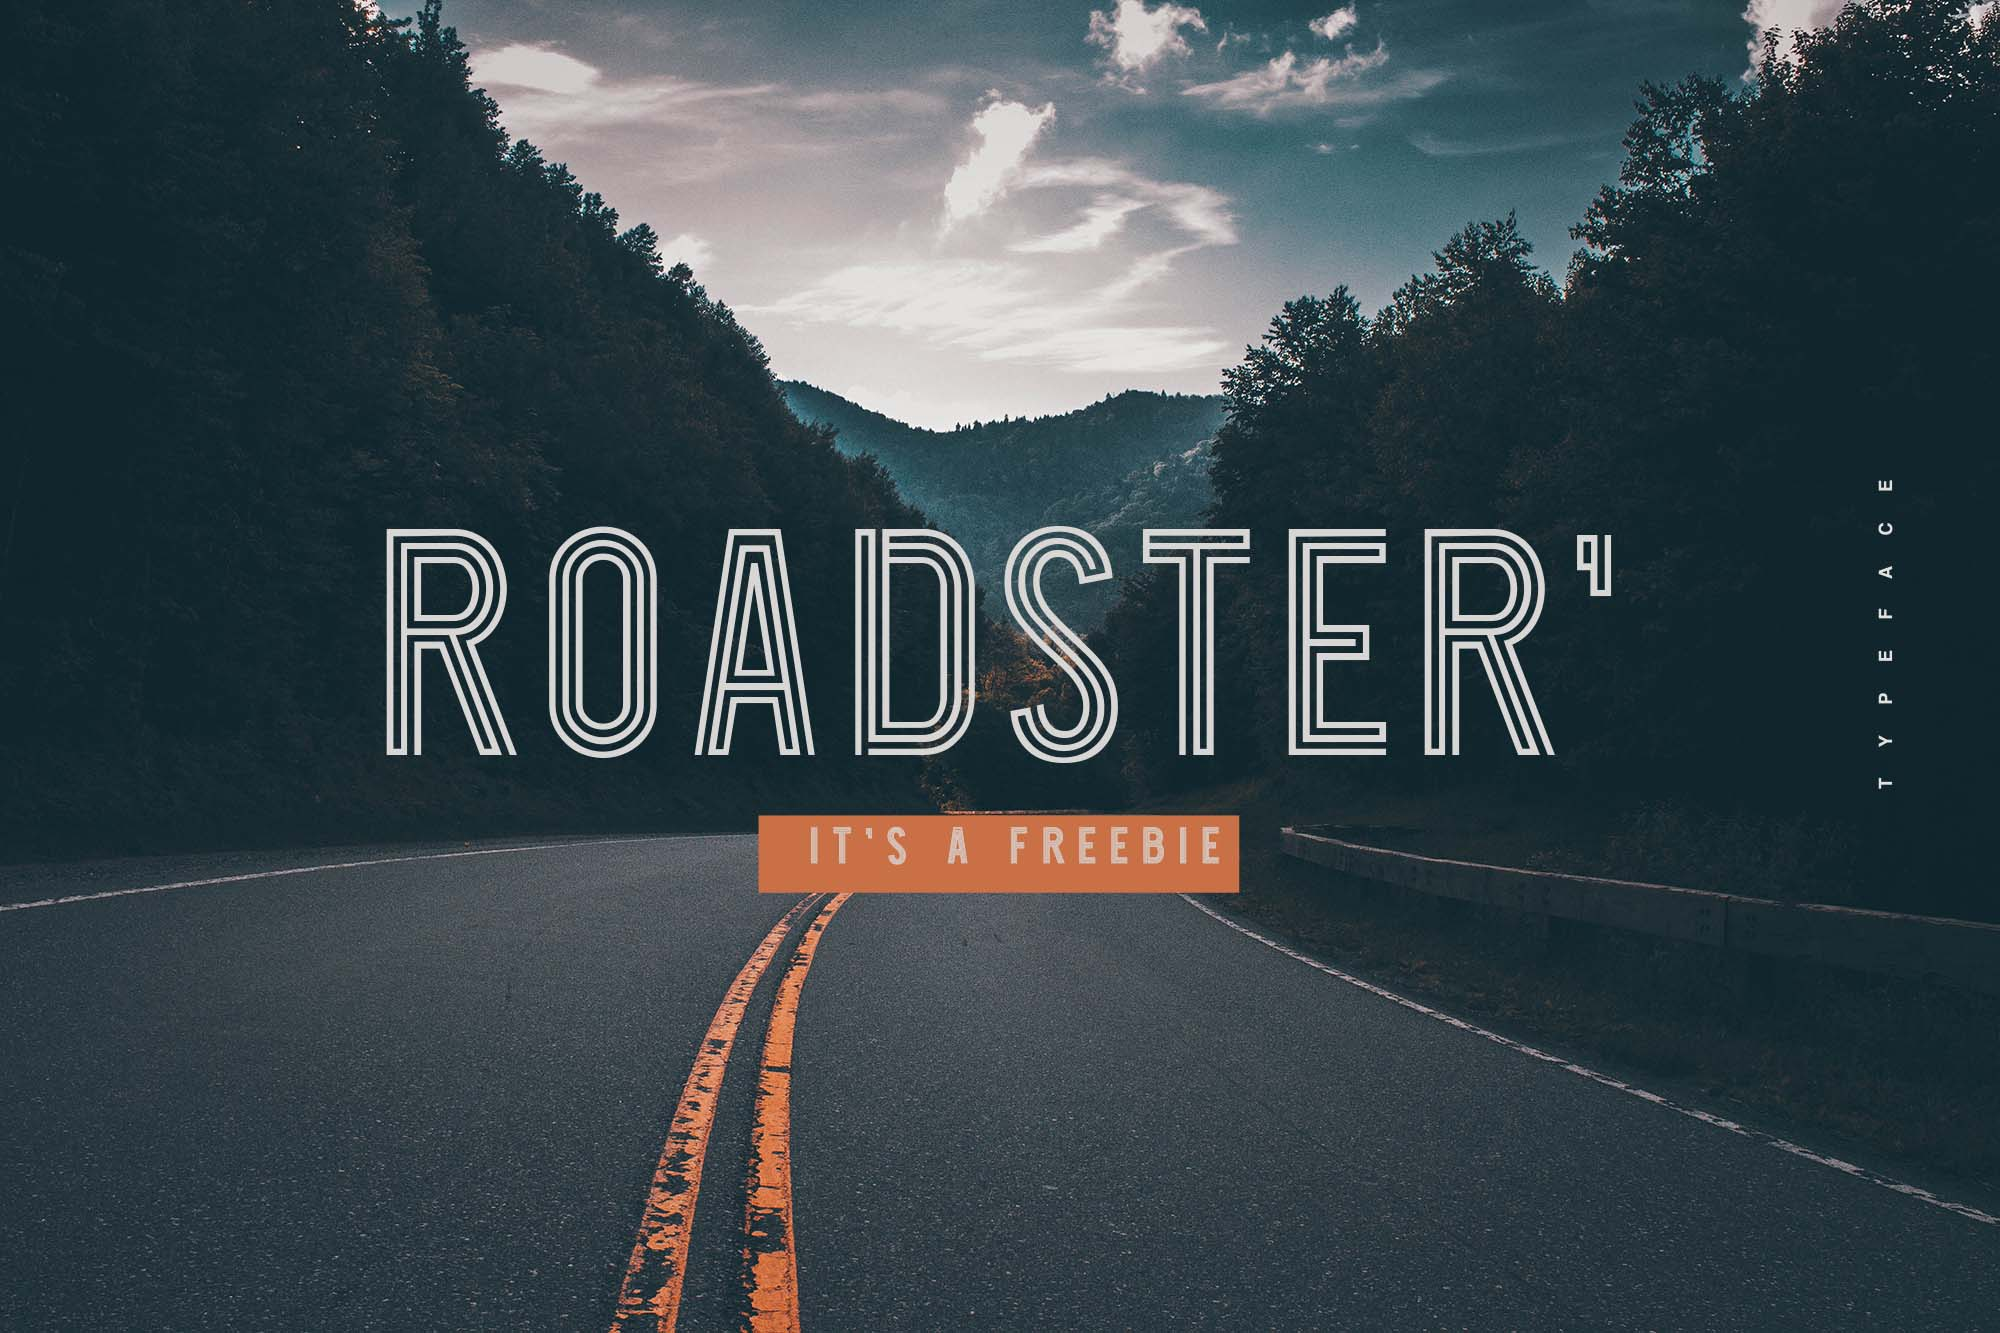 Roadster Display Free Font